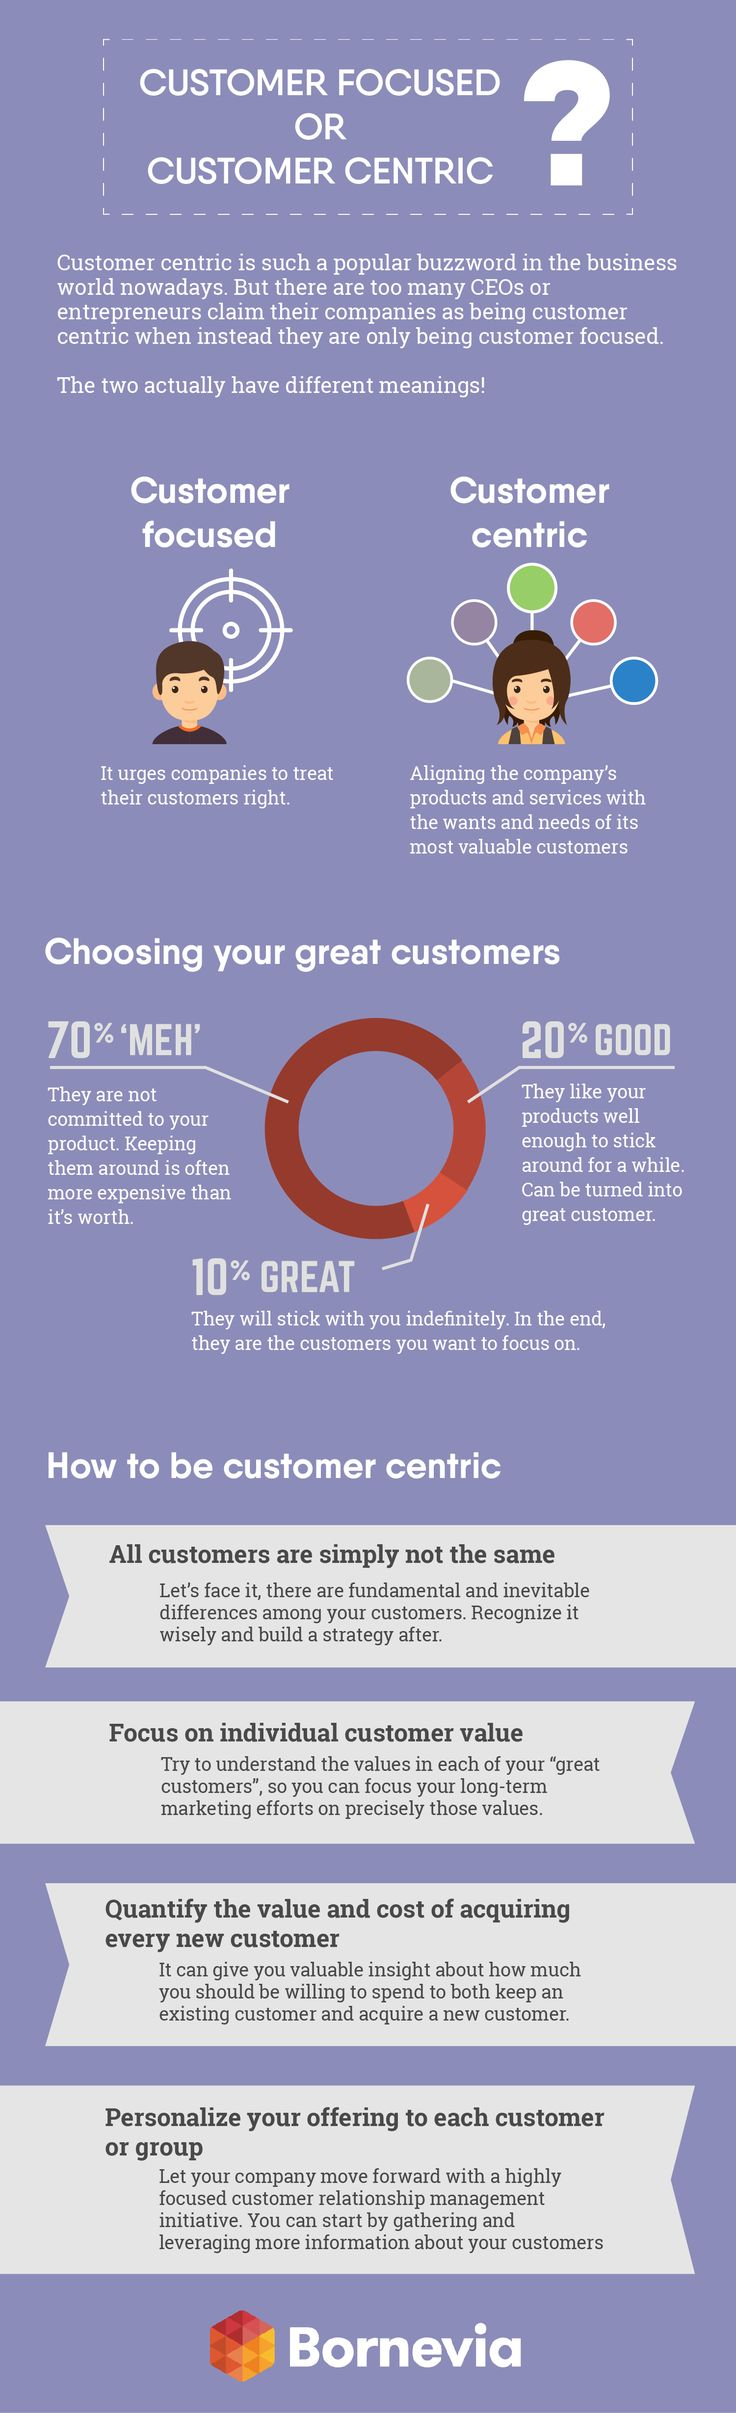 Customer centric is such a popular buzzword in the business world nowadays, though we doubt people really understand what it mean. Too many CEOs or entrepreneurs claim their companies as being customer centric when instead they are only being customer focused.   So, are you sure your company is truly customer centric? Find out here!